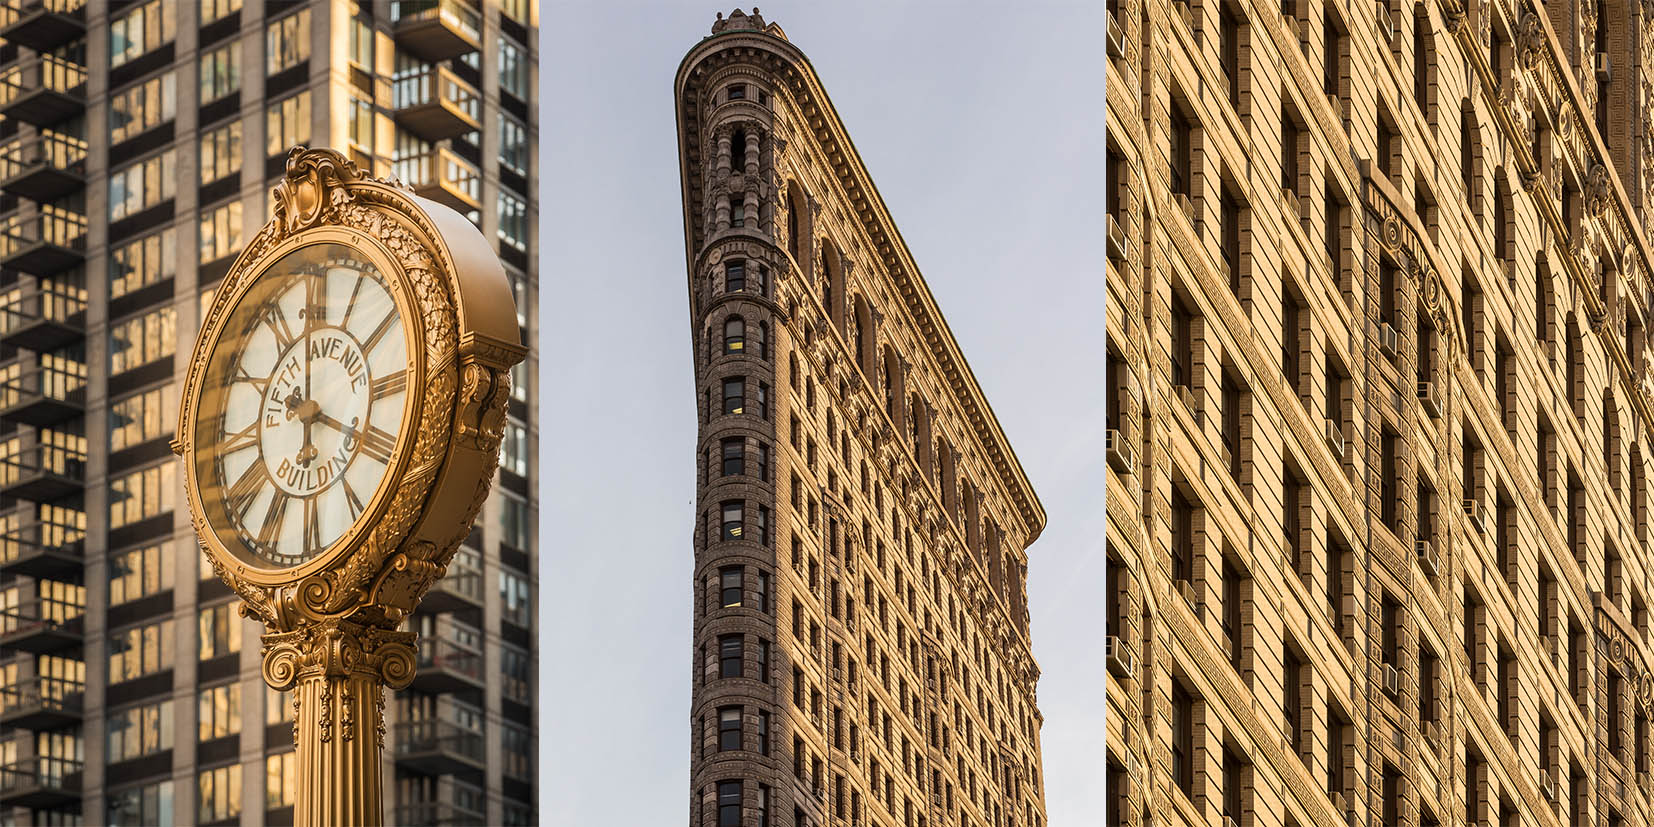 Flatiron Building - 175, 5th Avenue New York - 2015